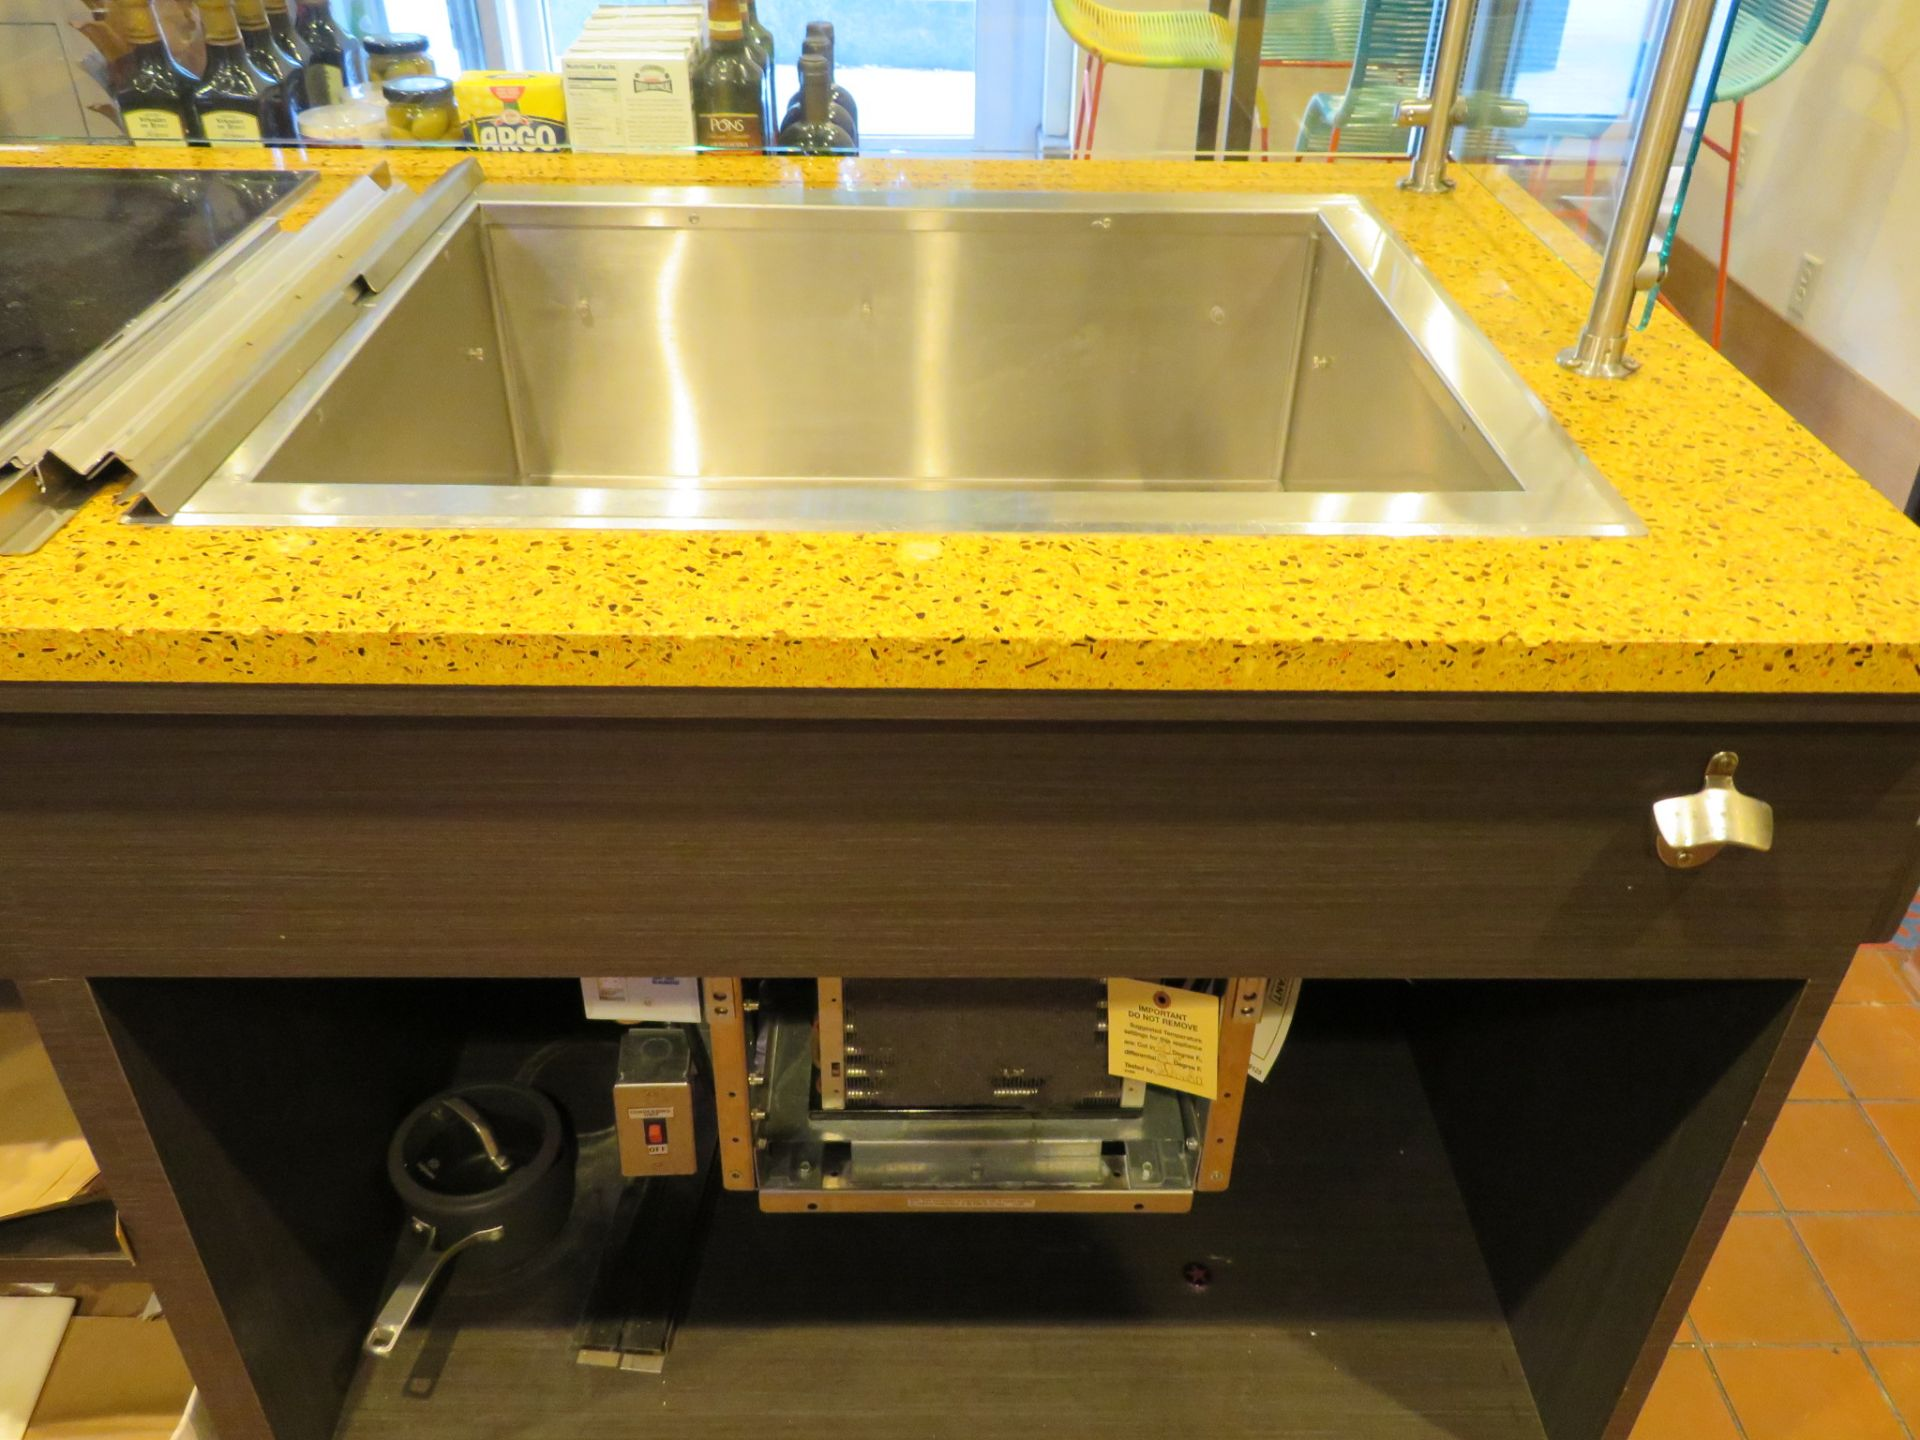 """Lot 64 - Approx. 10' Take Out Service Counter w/ Solid Surface Top Sneeze Guard Heat Lamp, 30"""" Drop in REF"""